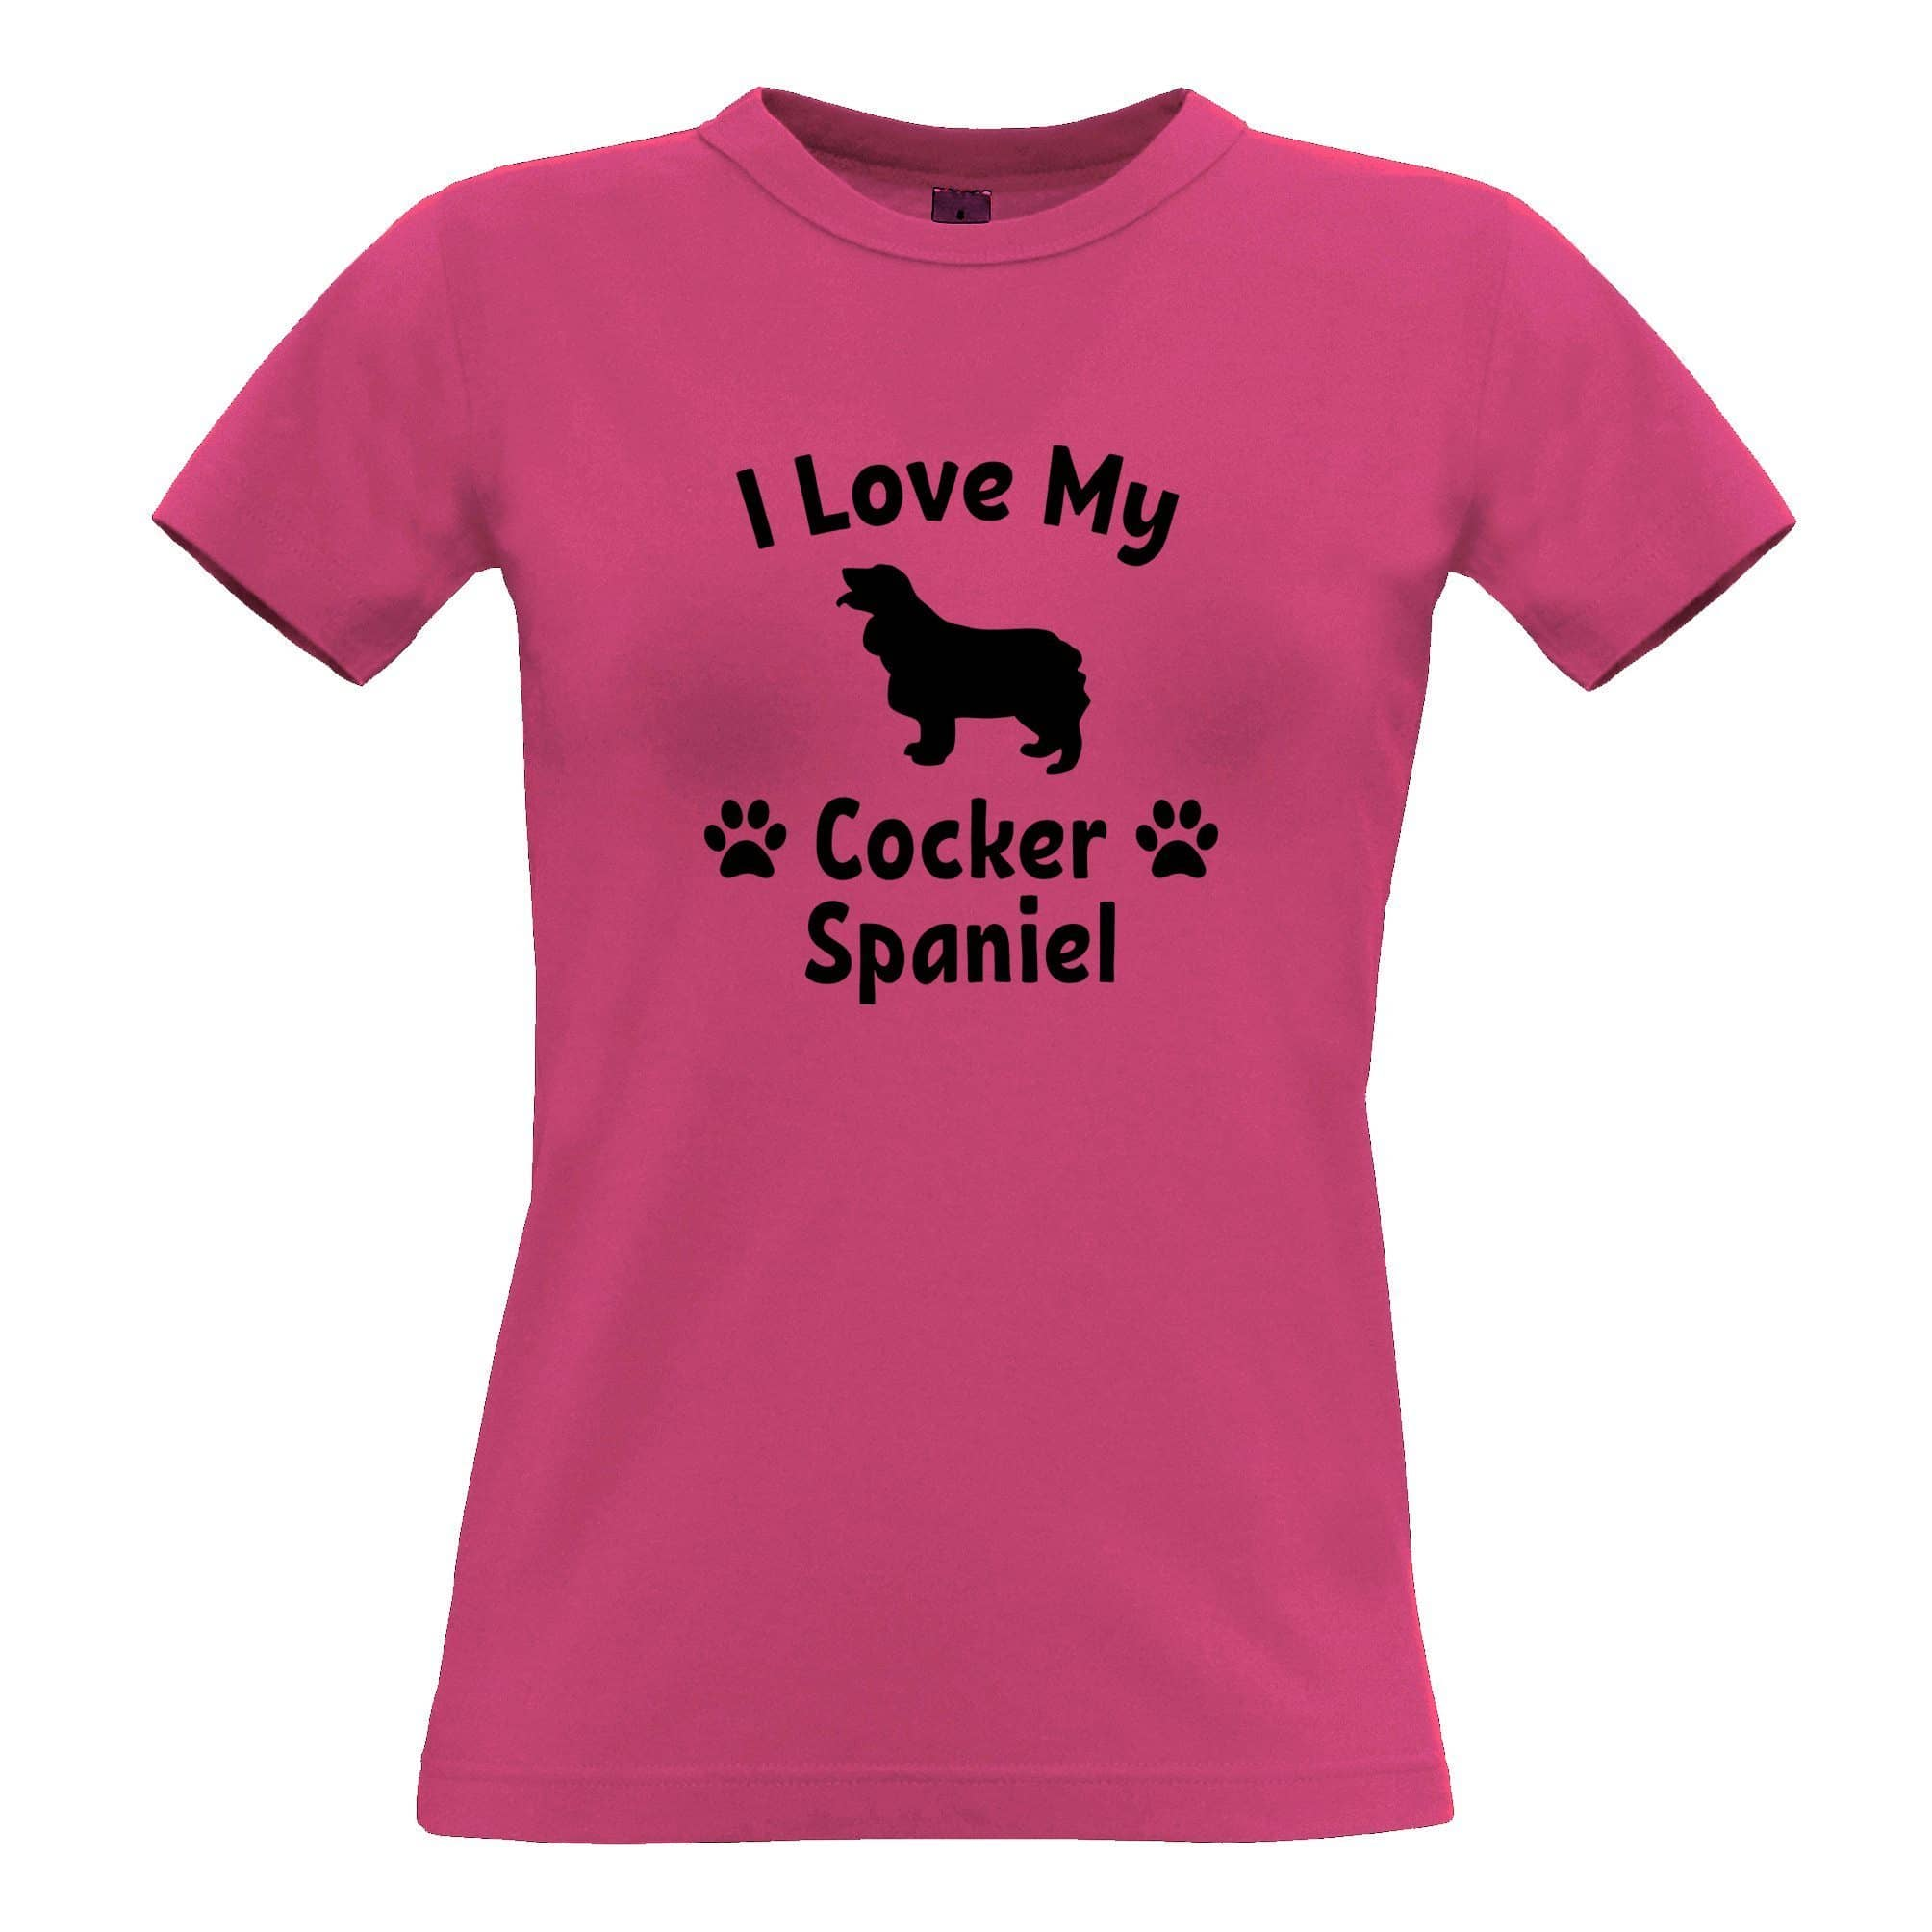 Dog Owner Womens TShirt I Love My Cocker Spaniel